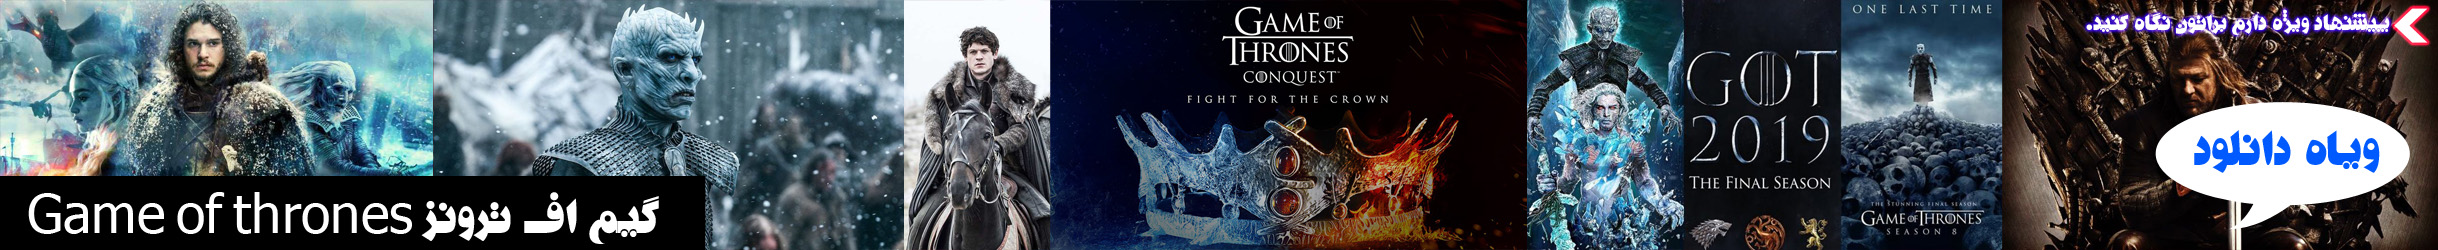 گیم اف ترونز Game of thrones